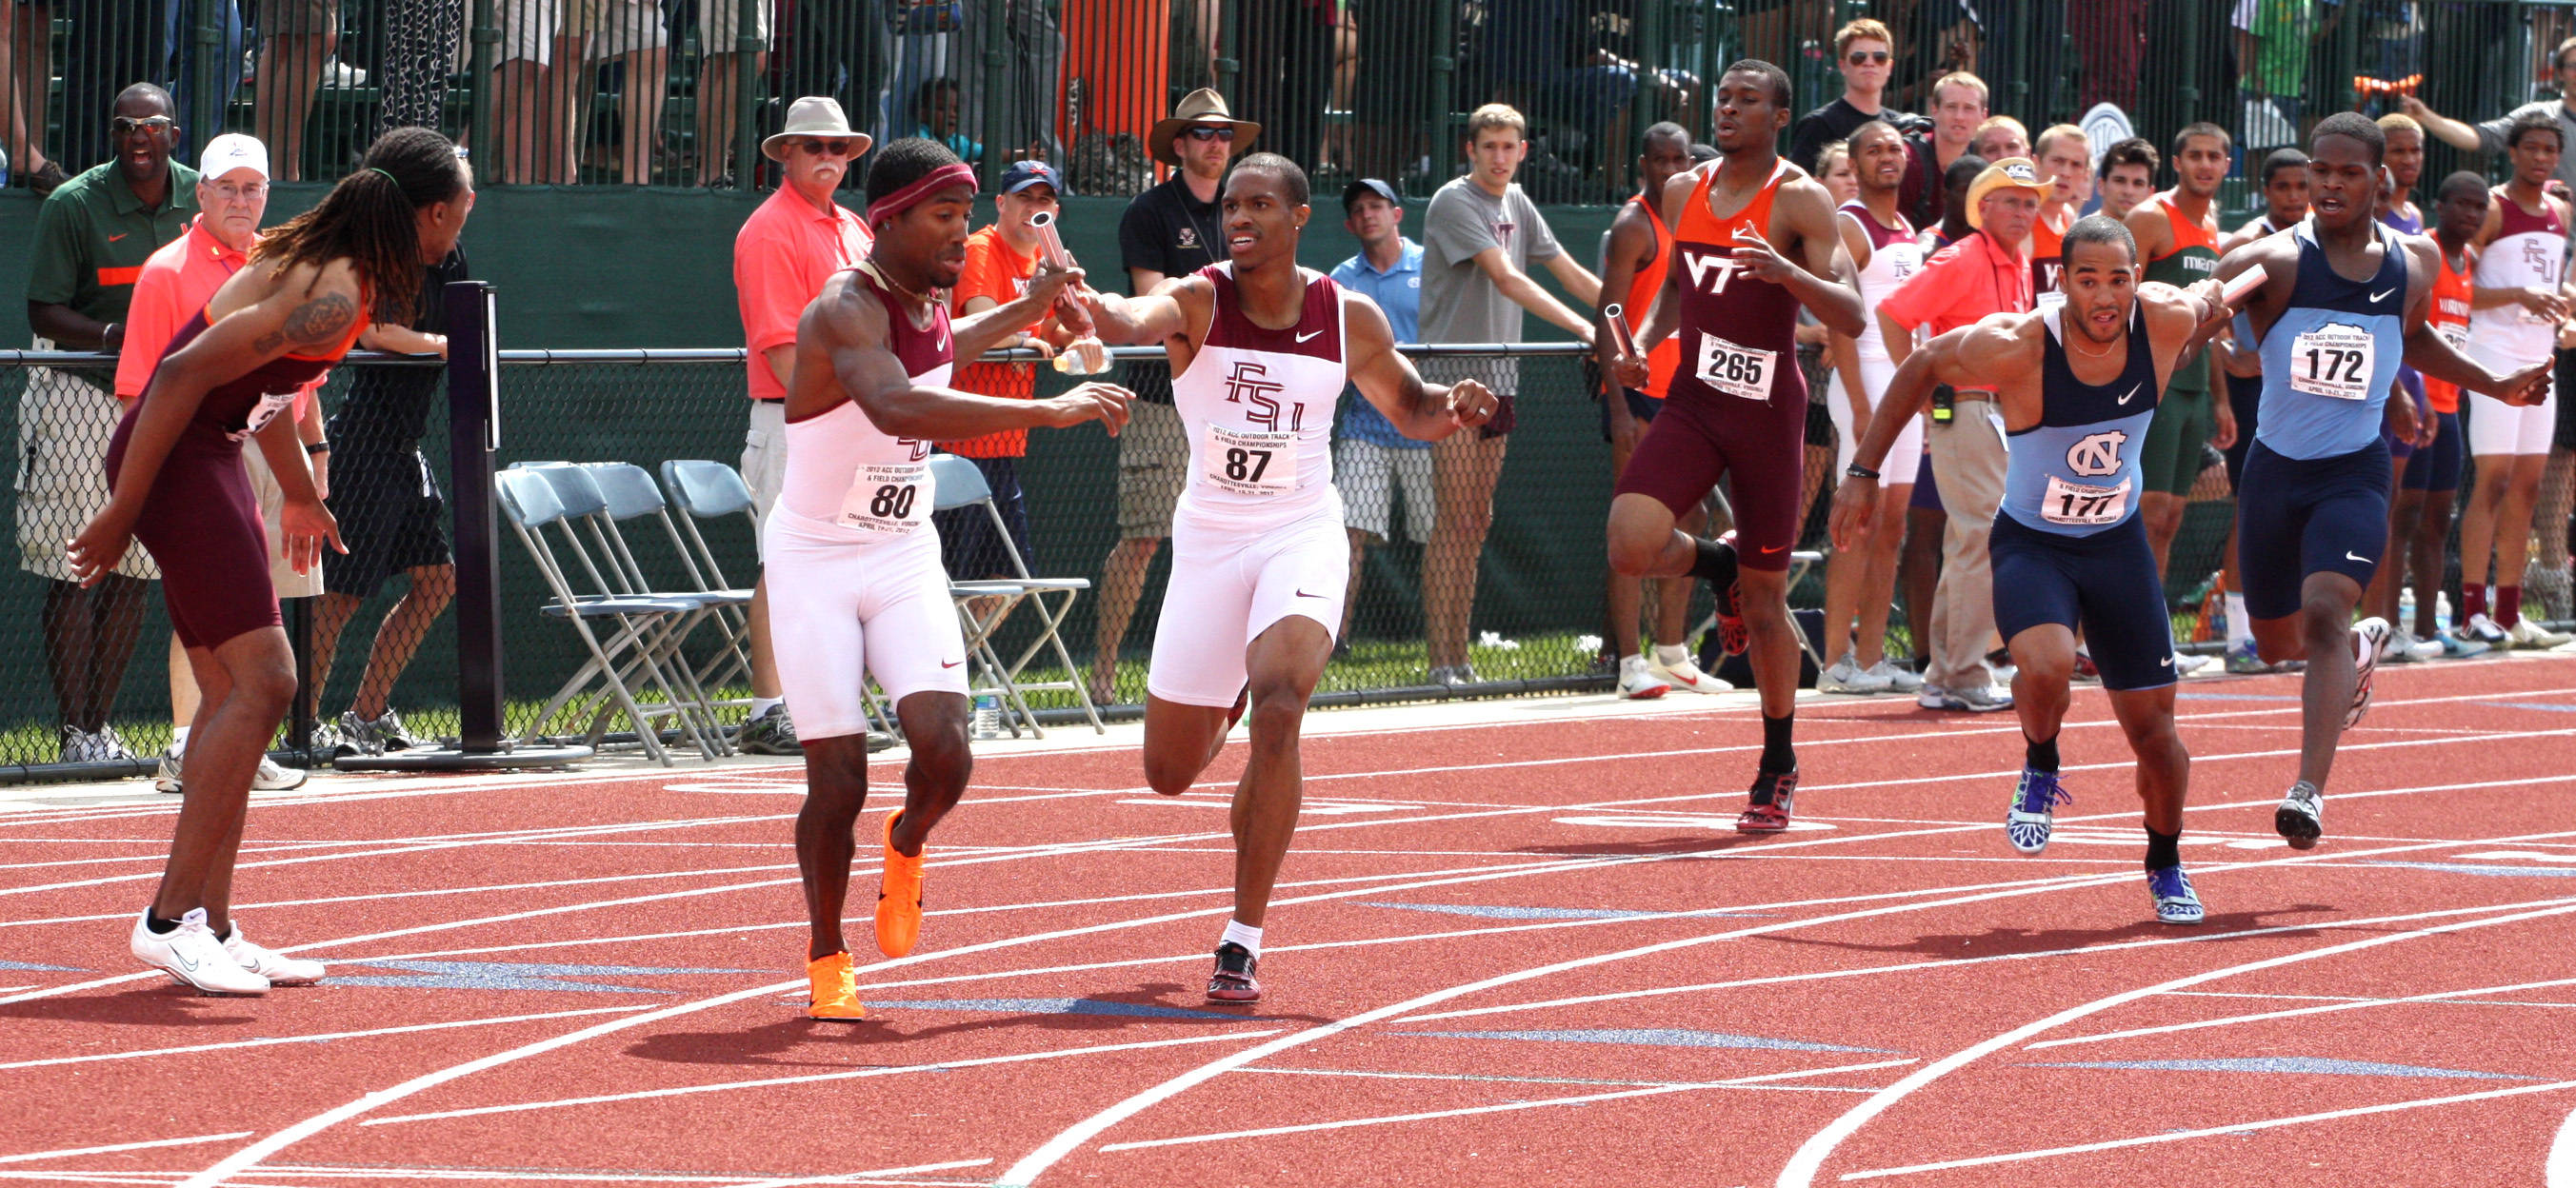 Maurice Mitchell passes the baton to Darrin Gibson for the second leg of FSU's third-place 4x400 relay team.